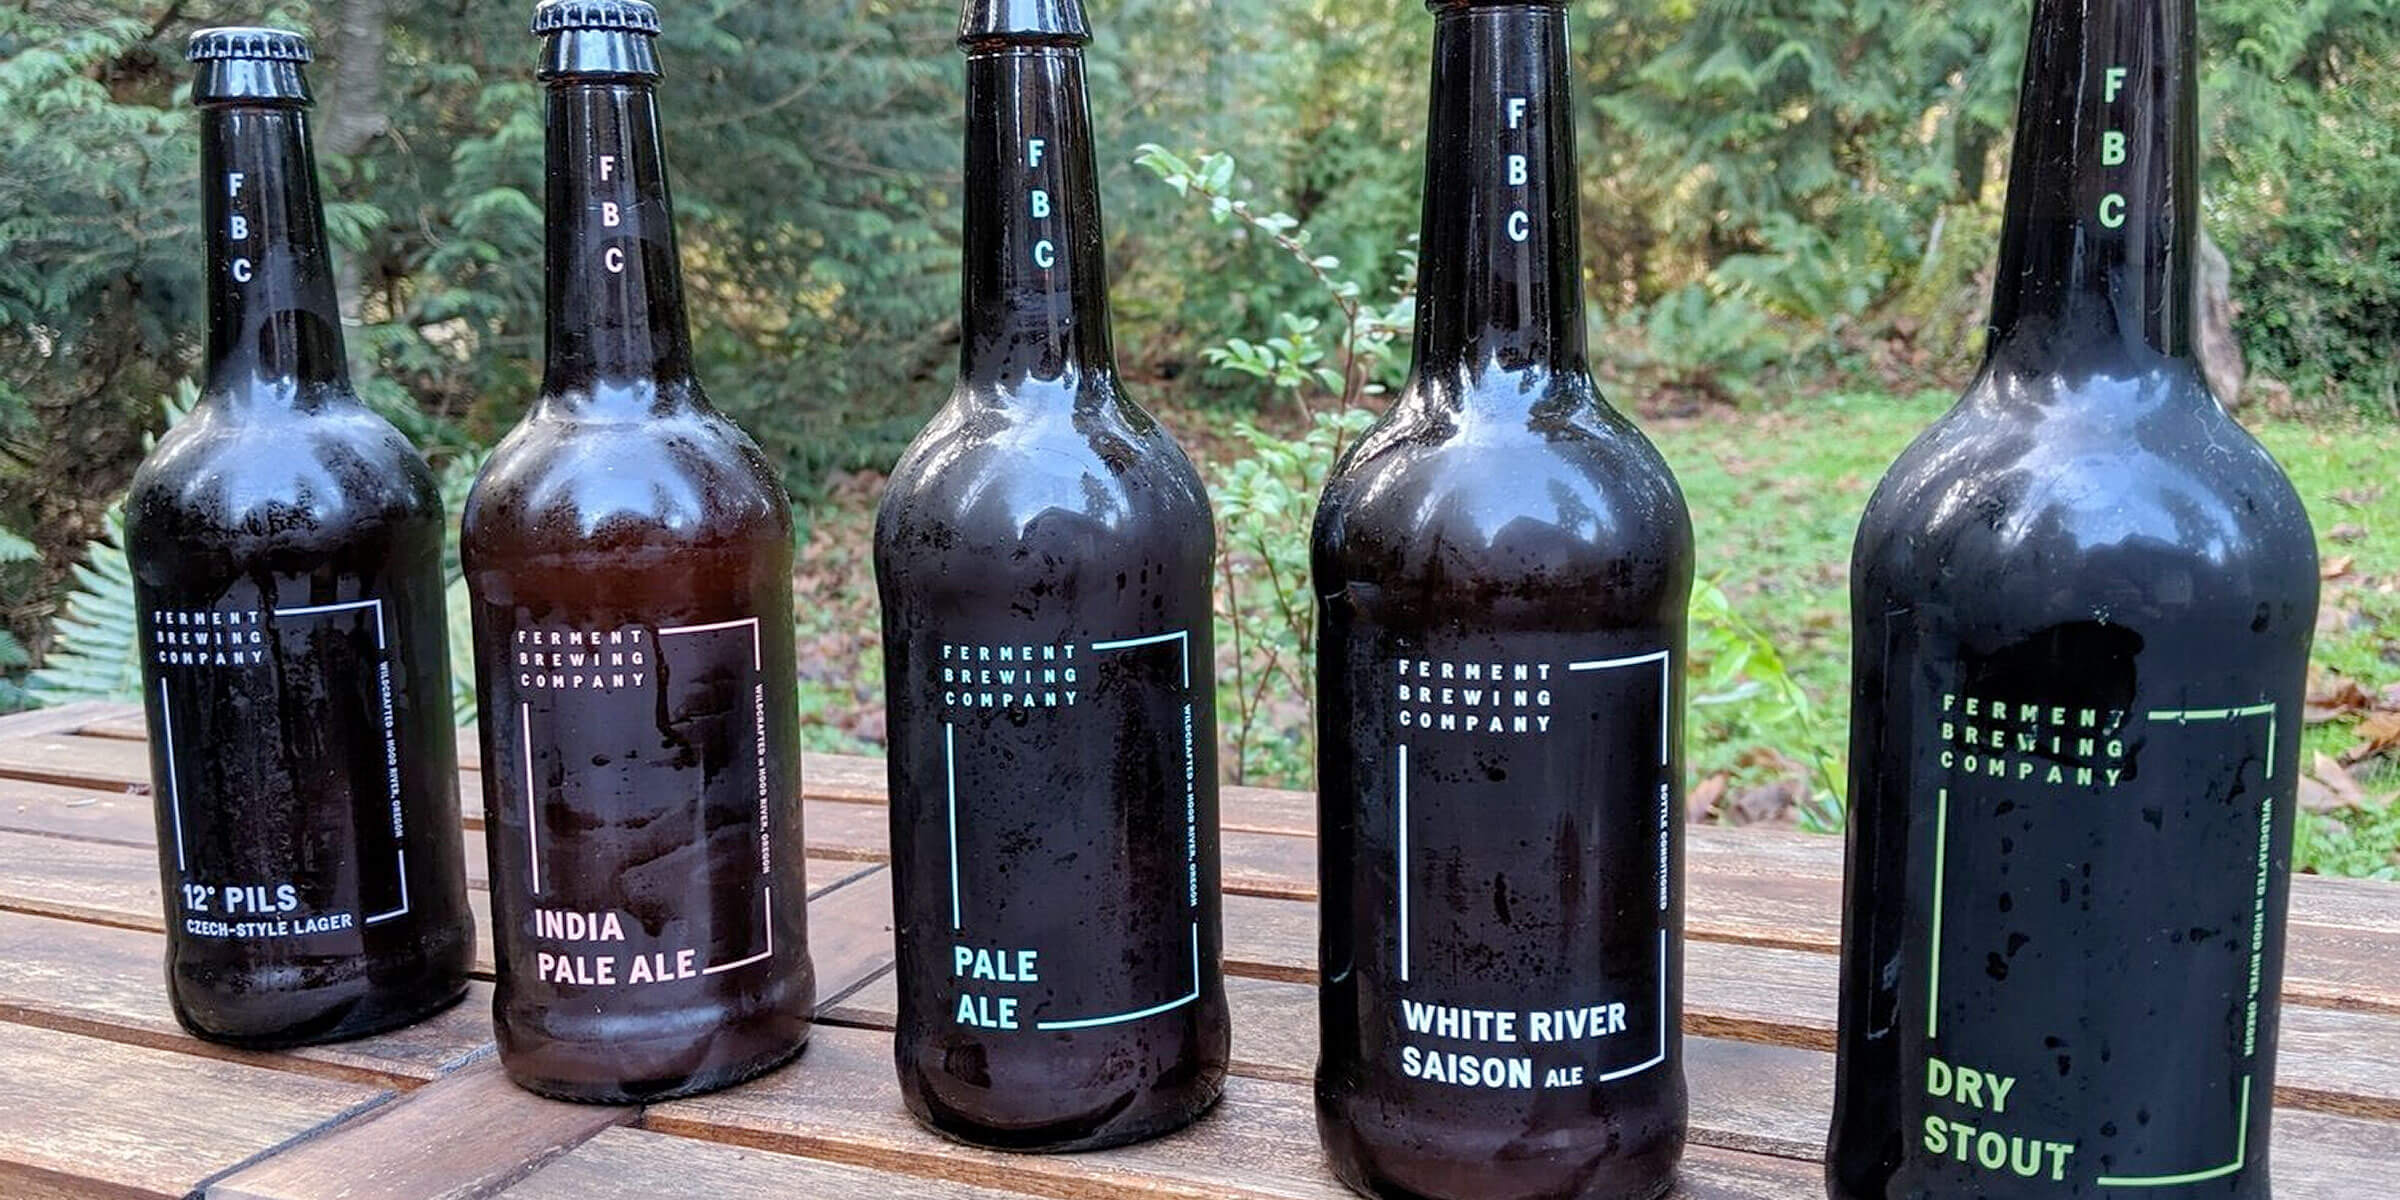 Lineup of bottled beers offered by Ferment Brewing Company